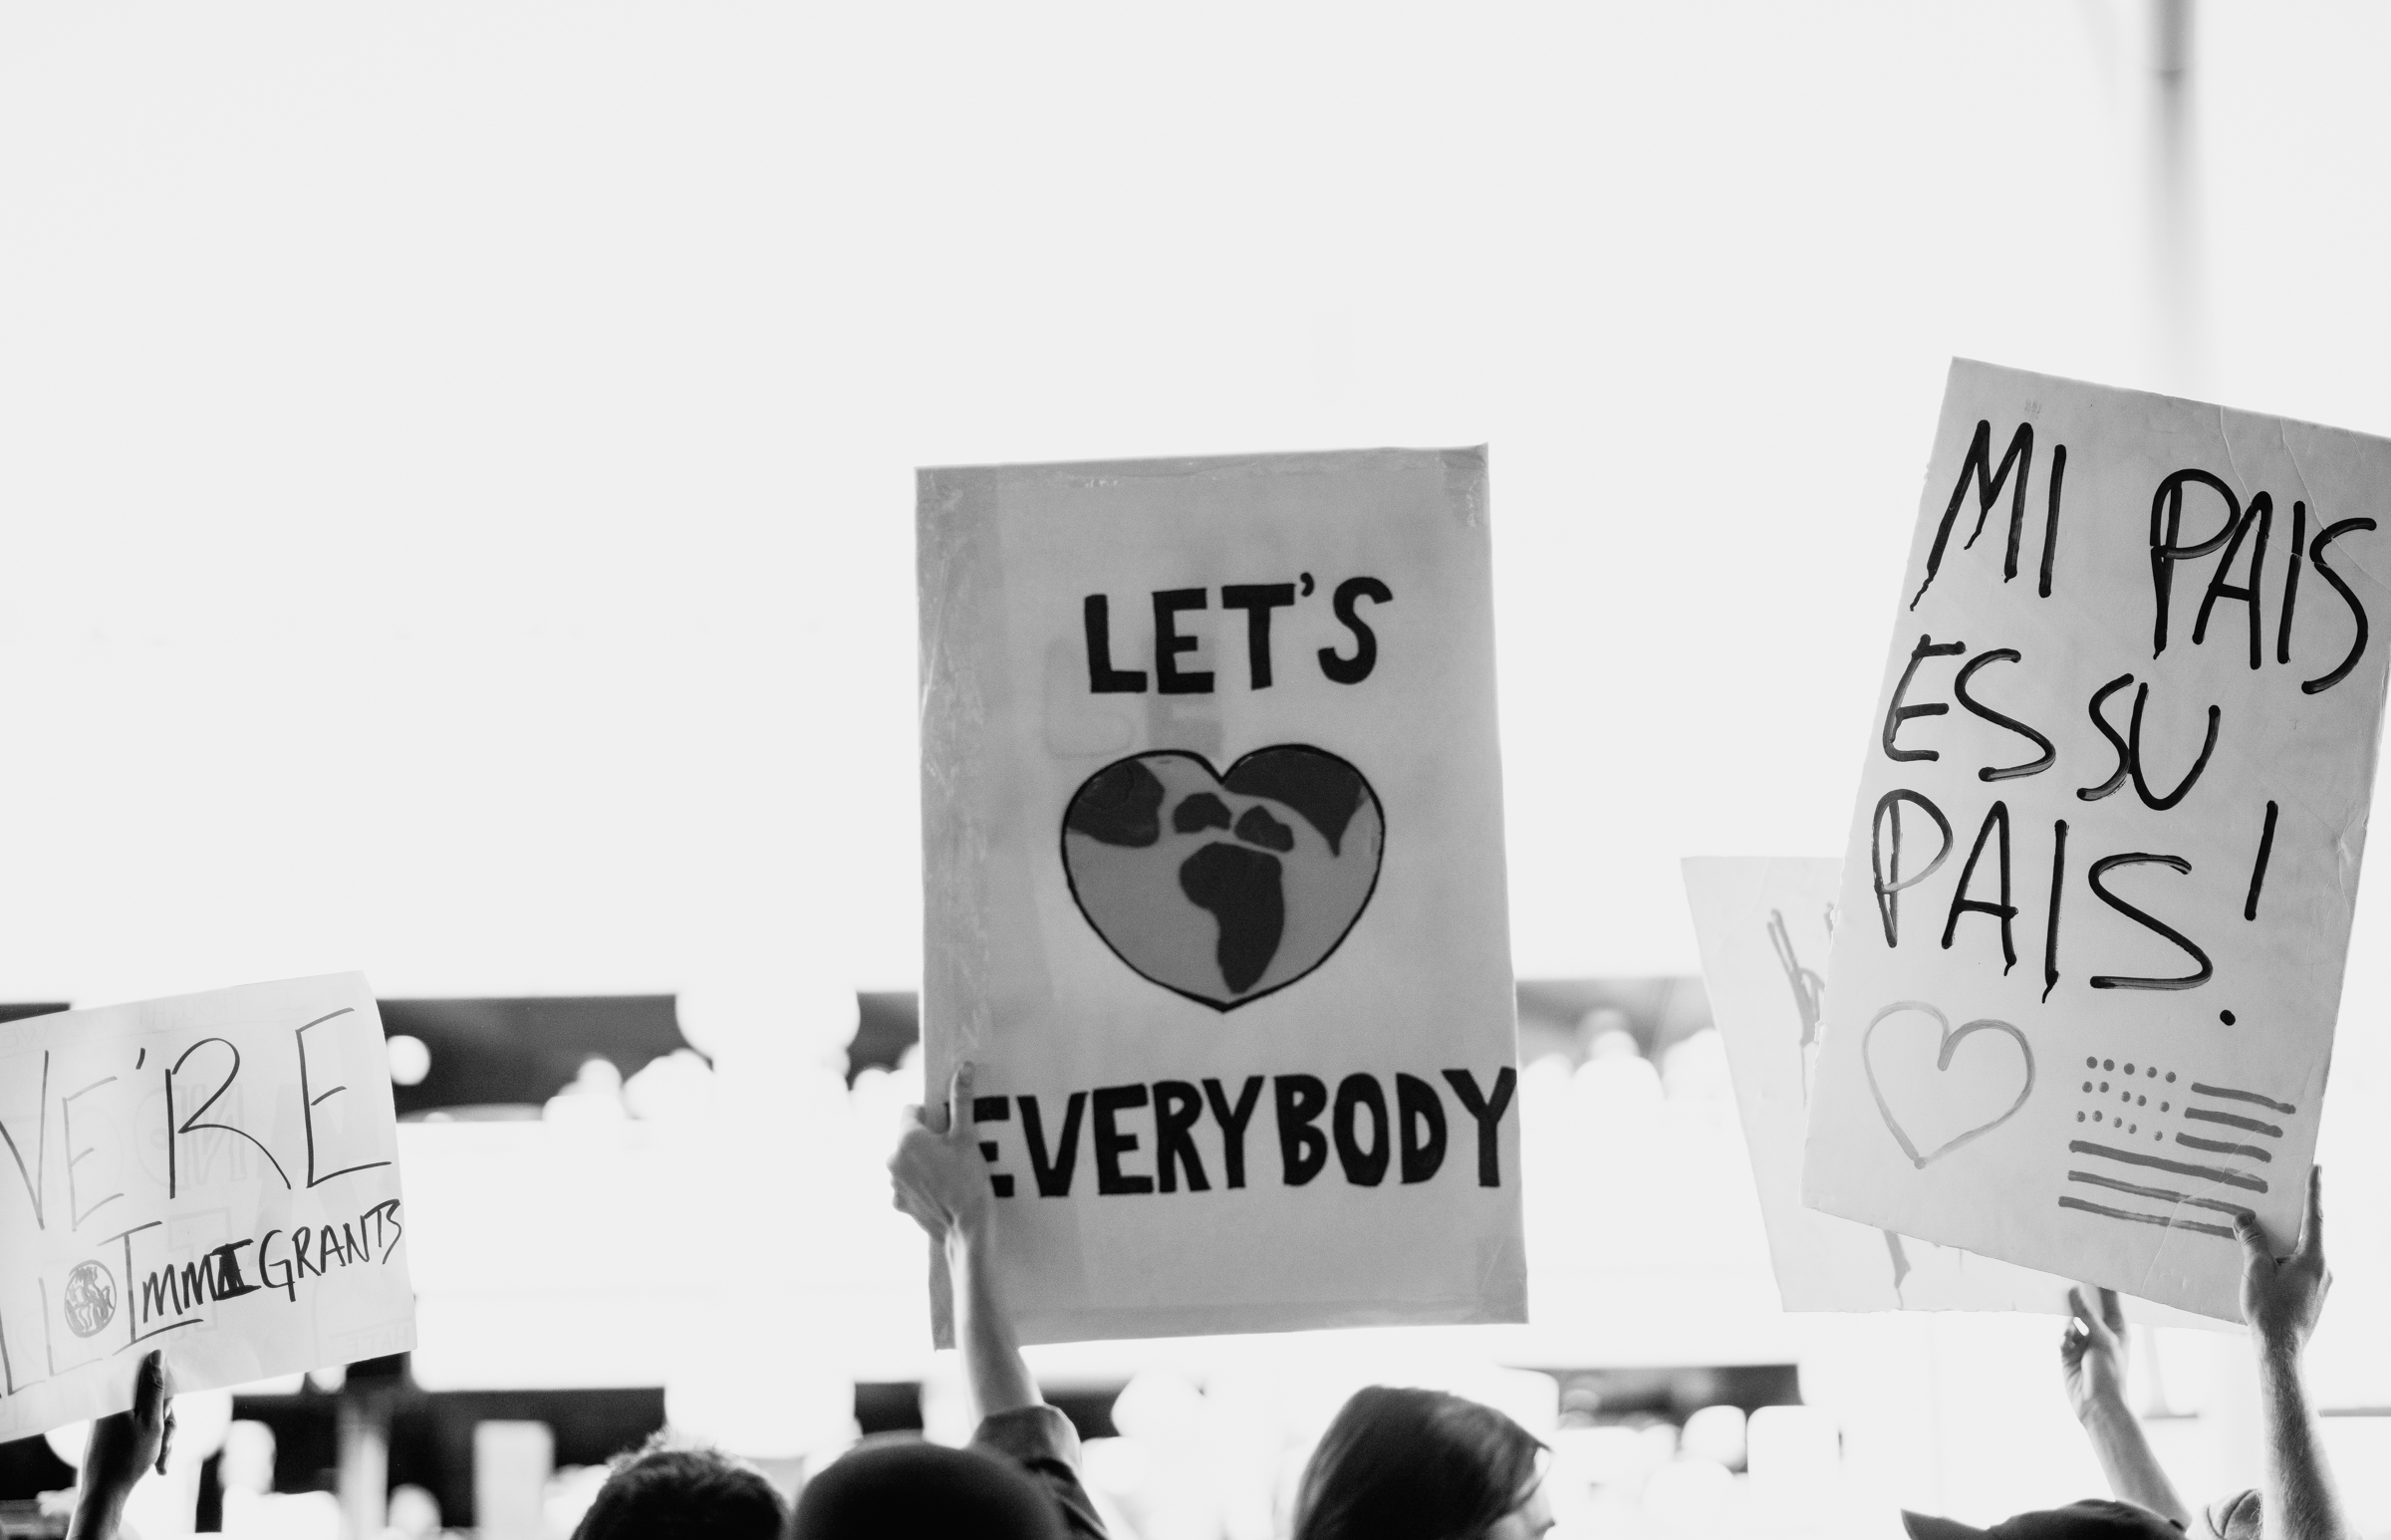 ©The Ryans Photography - LAX No Ban No Wall Protest-15.jpg